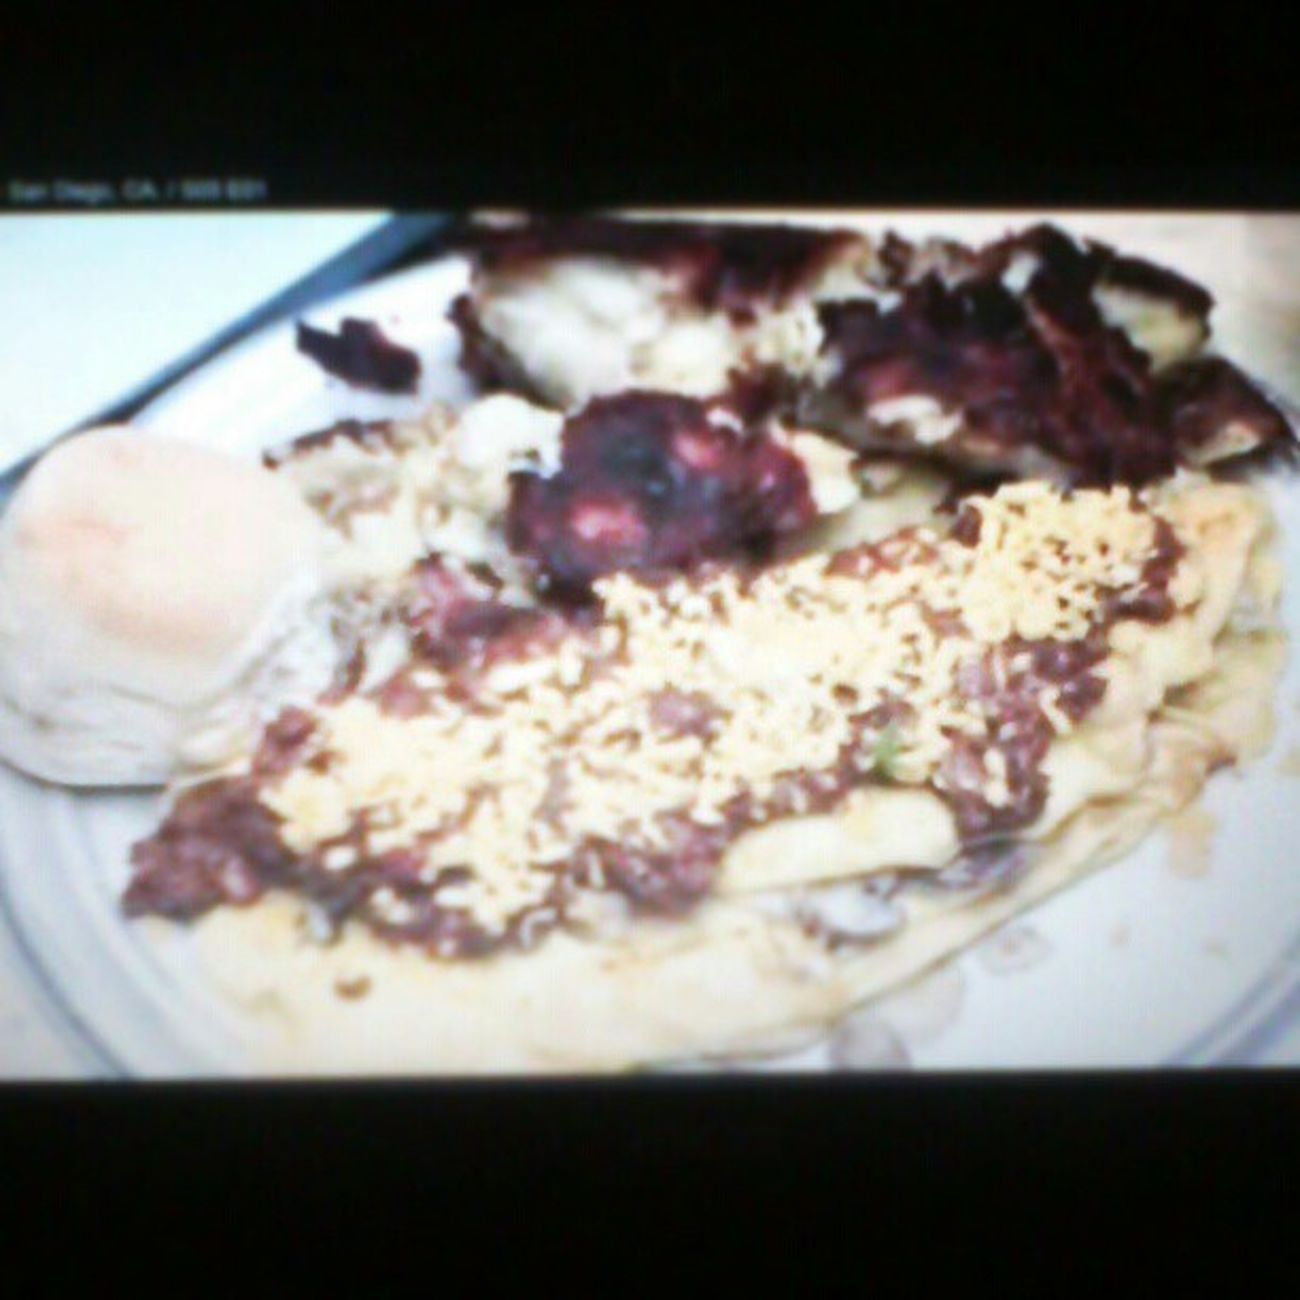 The Broken Yolk (6pounds: 12eggs, ChiliSauce, HashBrowns) ManVFood S03 Sandiego BrokenYolkCafe